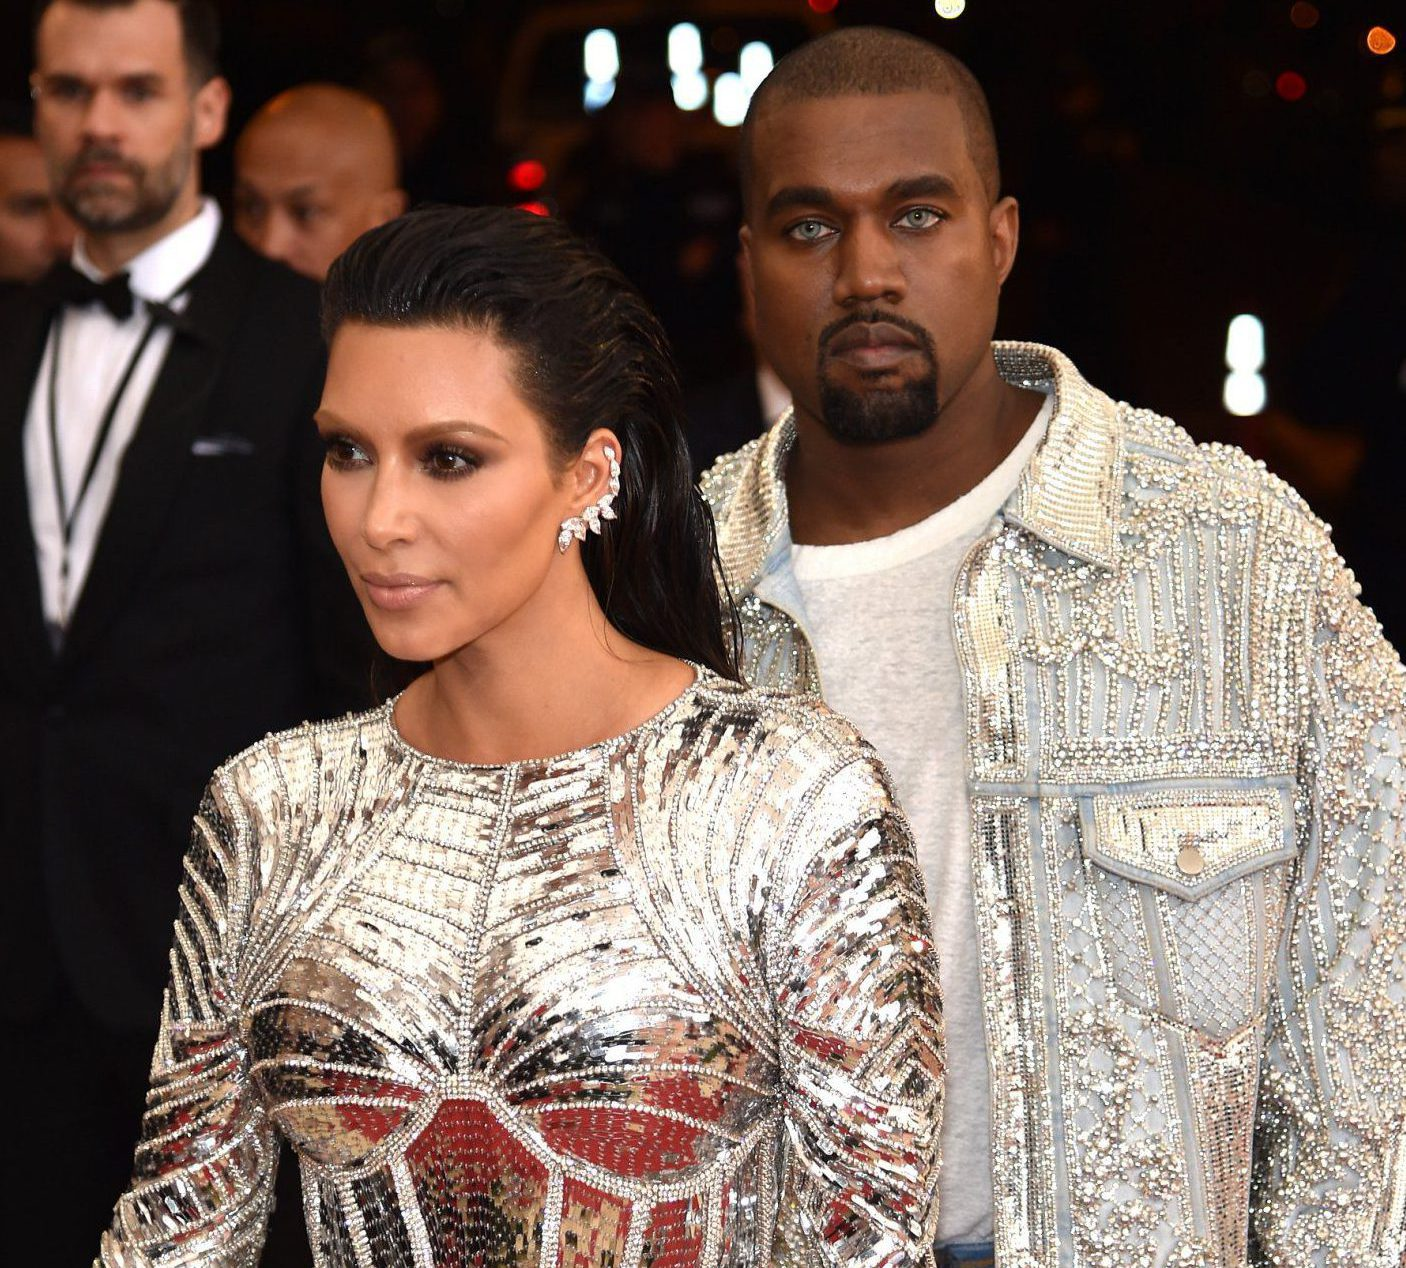 """NEW YORK, NY - MAY 02: Kim Kardashian West and Kanye West attend the """"Manus x Machina: Fashion In An Age Of Technology"""" Costume Institute Gala at Metropolitan Museum of Art on May 2, 2016 in New York City. (Photo by Dimitrios Kambouris/Getty Images)"""